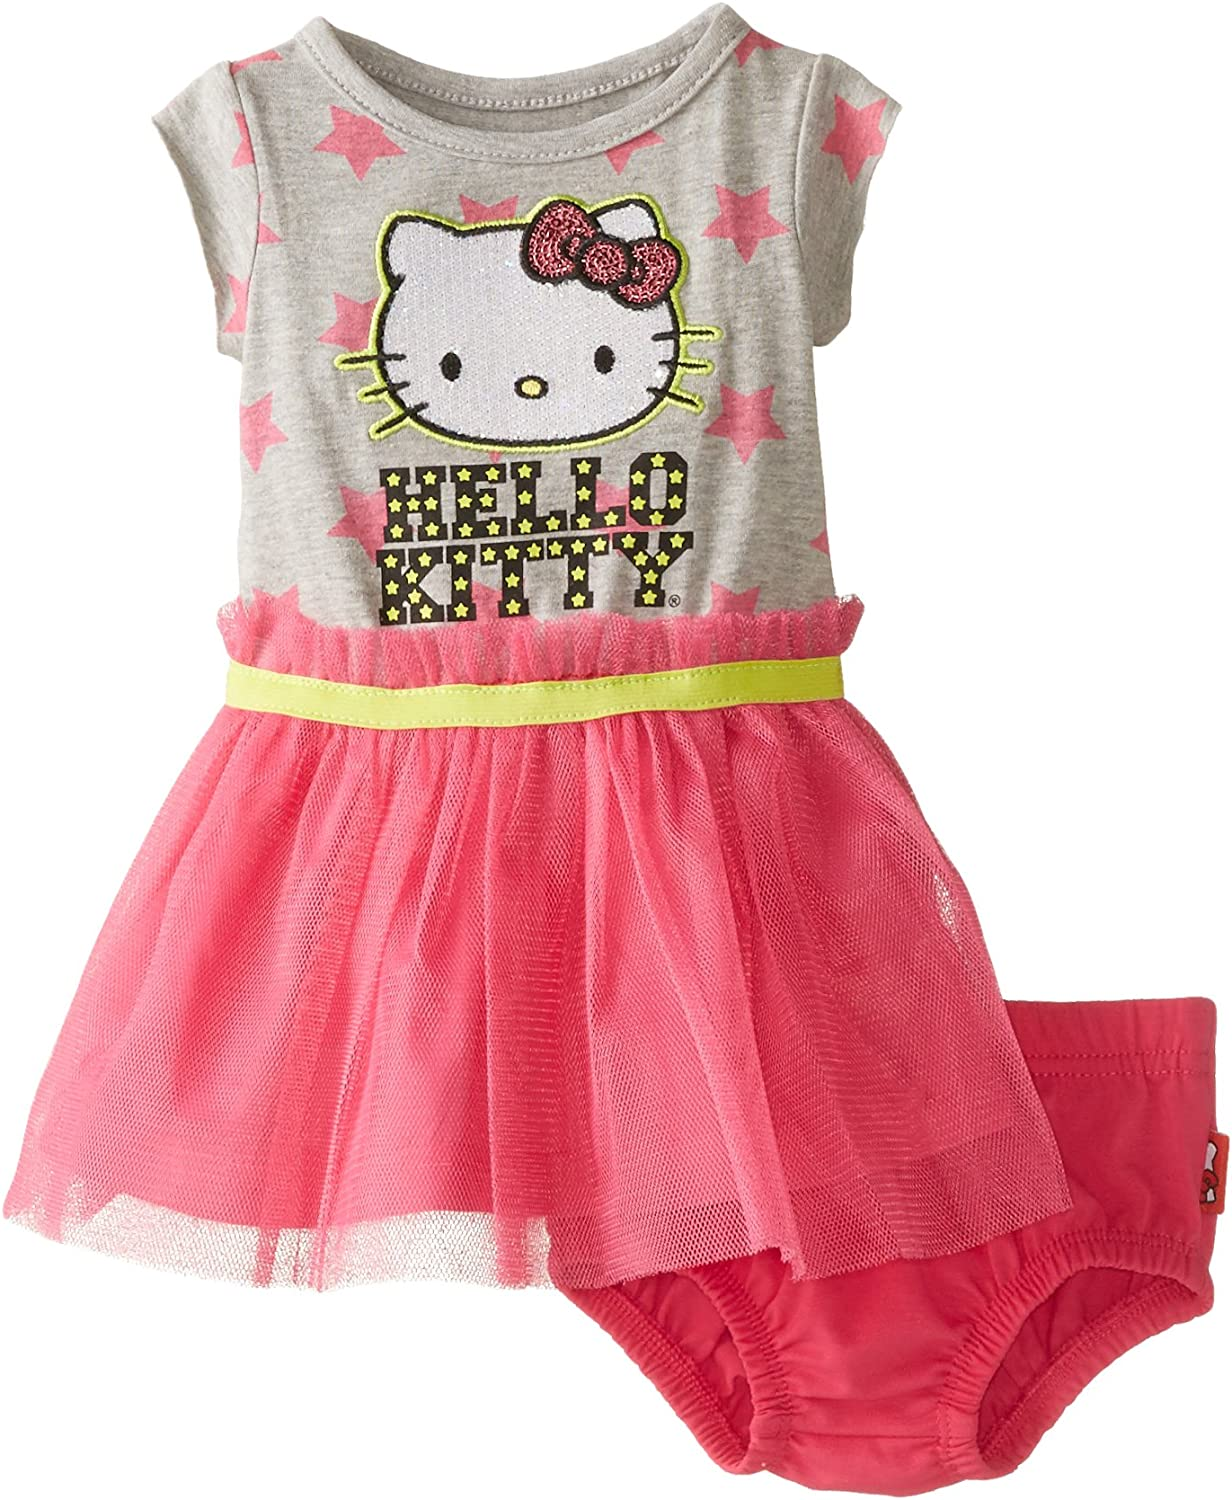 Hello Kitty Knockout Pink 2 Piece Pink Skirt Set for Baby Girls